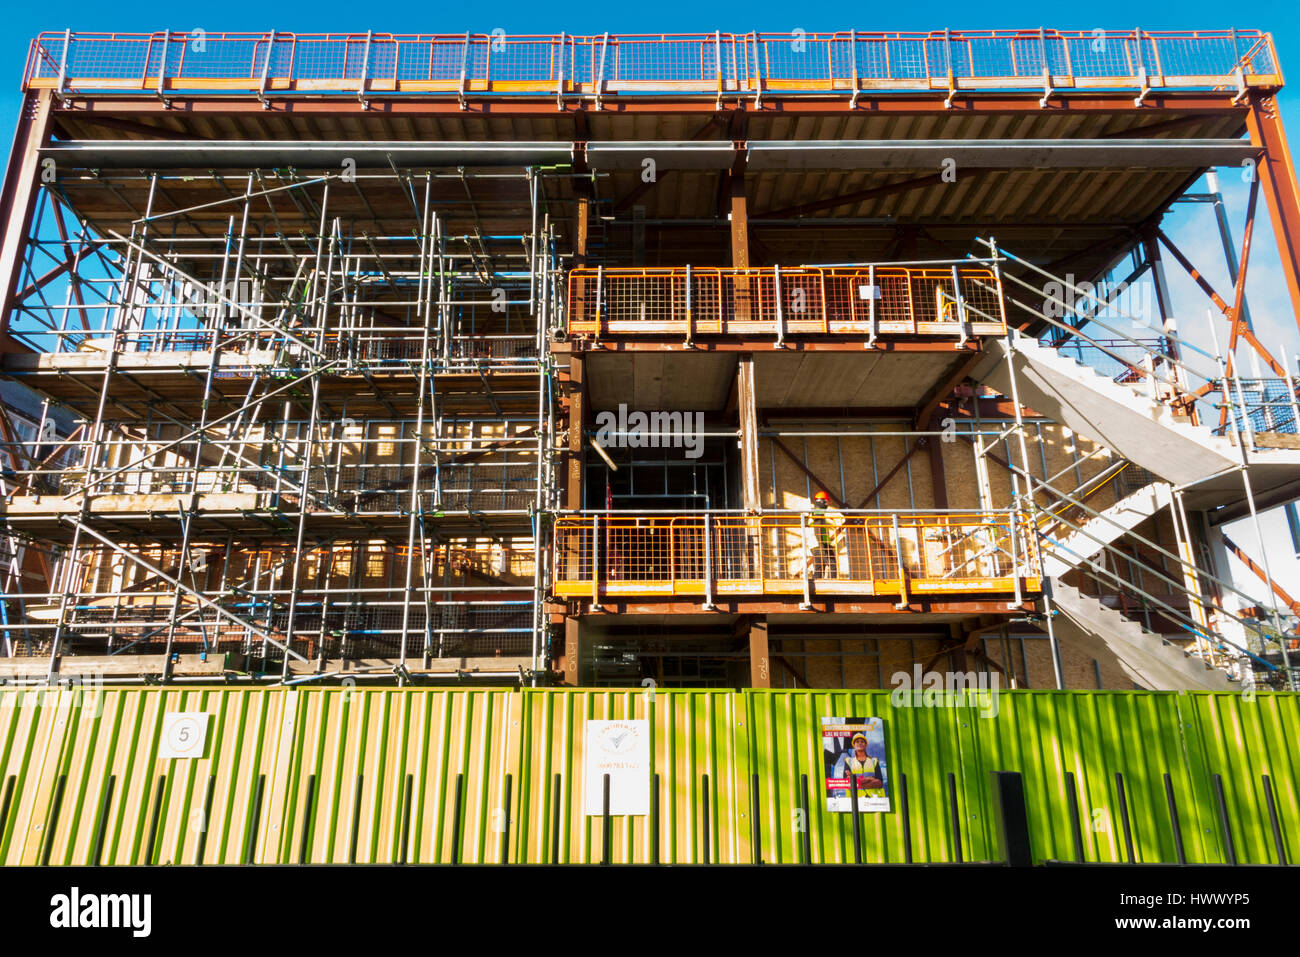 School extension / steel frame / framed building being built / assembled / constructed on a construction site with - Stock Image